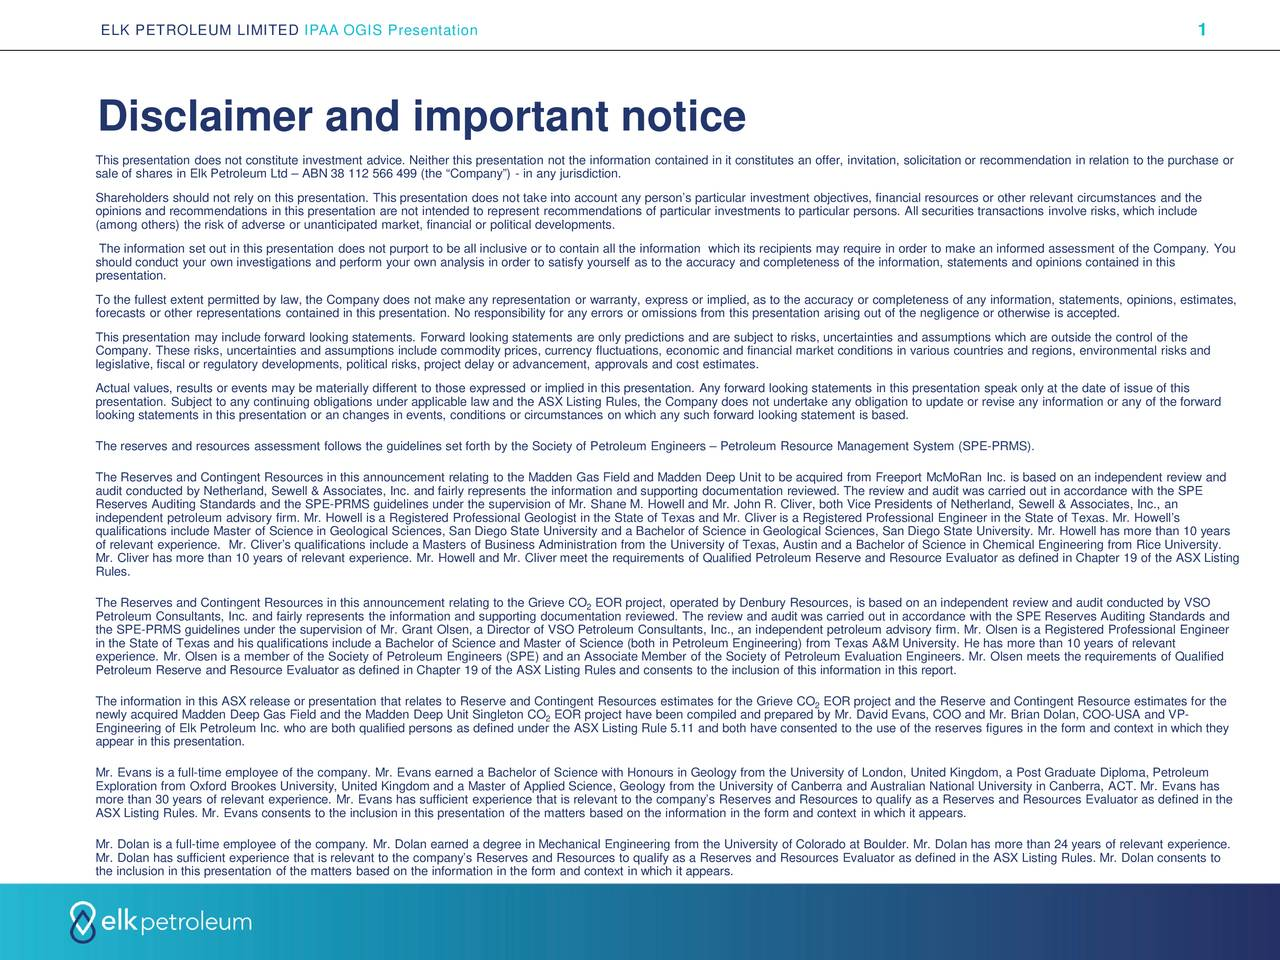 """Disclaimer and important notice This presentation does not constitute investment advice. Neither this presentation not the information contained in it constitutes an offer, invitation, solicitation or recommendation in relation to the purchase or sale of shares in Elk Petroleum Ltd – ABN 38 112 566 499 (the """"Company"""") - in any jurisdiction. Shareholders should not rely on this presentation. This presentation does not take into account any person's particular investment objectives, financial resources or other relevant circumstances and the opinions and recommendations in this presentation are not intended to represent recommendations of particular investments to particular persons. All securities transactions involve risks, which include (among others) the risk of adverse or unanticipated market, financial or political developments. The information set out in this presentation does not purport to be all inclusive or to contain all the information which its recipients may require in order to make an informed assessment of the Company. You should conduct your own investigations and perform your own analysis in order to satisfy yourself as to the accuracy and complet eness of the information, statements and opinions contained in this presentation. To the fullest extent permitted by law, the Company does not make any representation or warranty, express or implied, as to t he accuracy or completeness of any information, statements, opinions, estimates, forecasts or other representations contained in this presentation. No responsibility for any errors or omissions from this presentation arising out of the negligence or otherwise is accepted. This presentation may include forward looking statements. Forward looking statements are only predictions and are subject to risks, uncertainties and assumptions which are outside the control of the Company. These risks, uncertainties and assumptions include commodity prices, currency fluctuations, economic and financial market condit"""